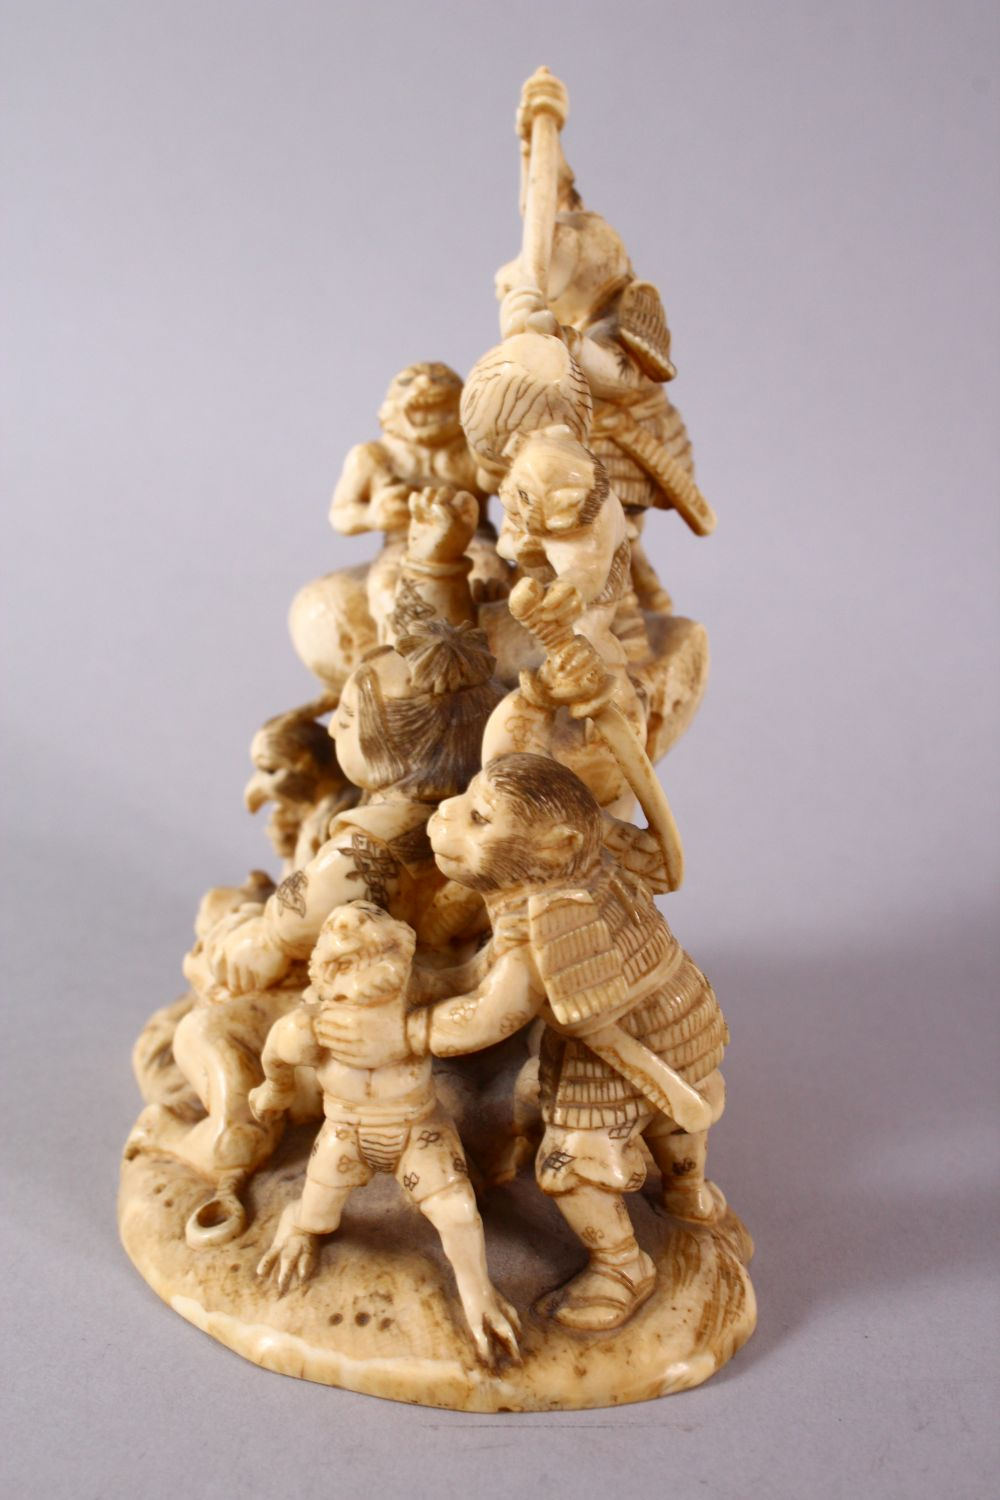 A JAPANESE MEIJI PERIOD CARVED IVORY OKIMONO GROUP - depicting figures attacking oni demons, one dog - Image 5 of 14